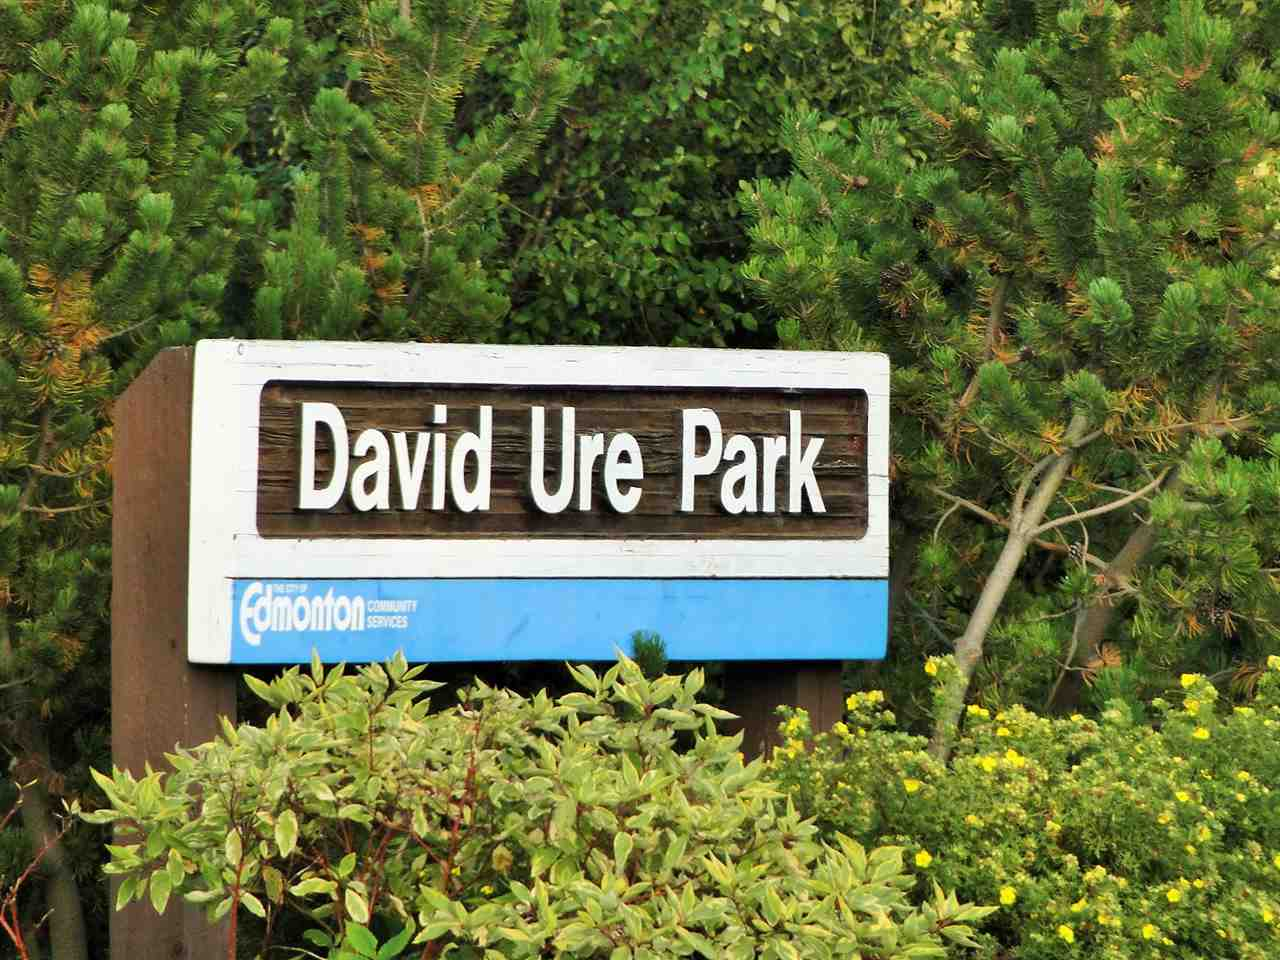 David Ure Park right across the road!